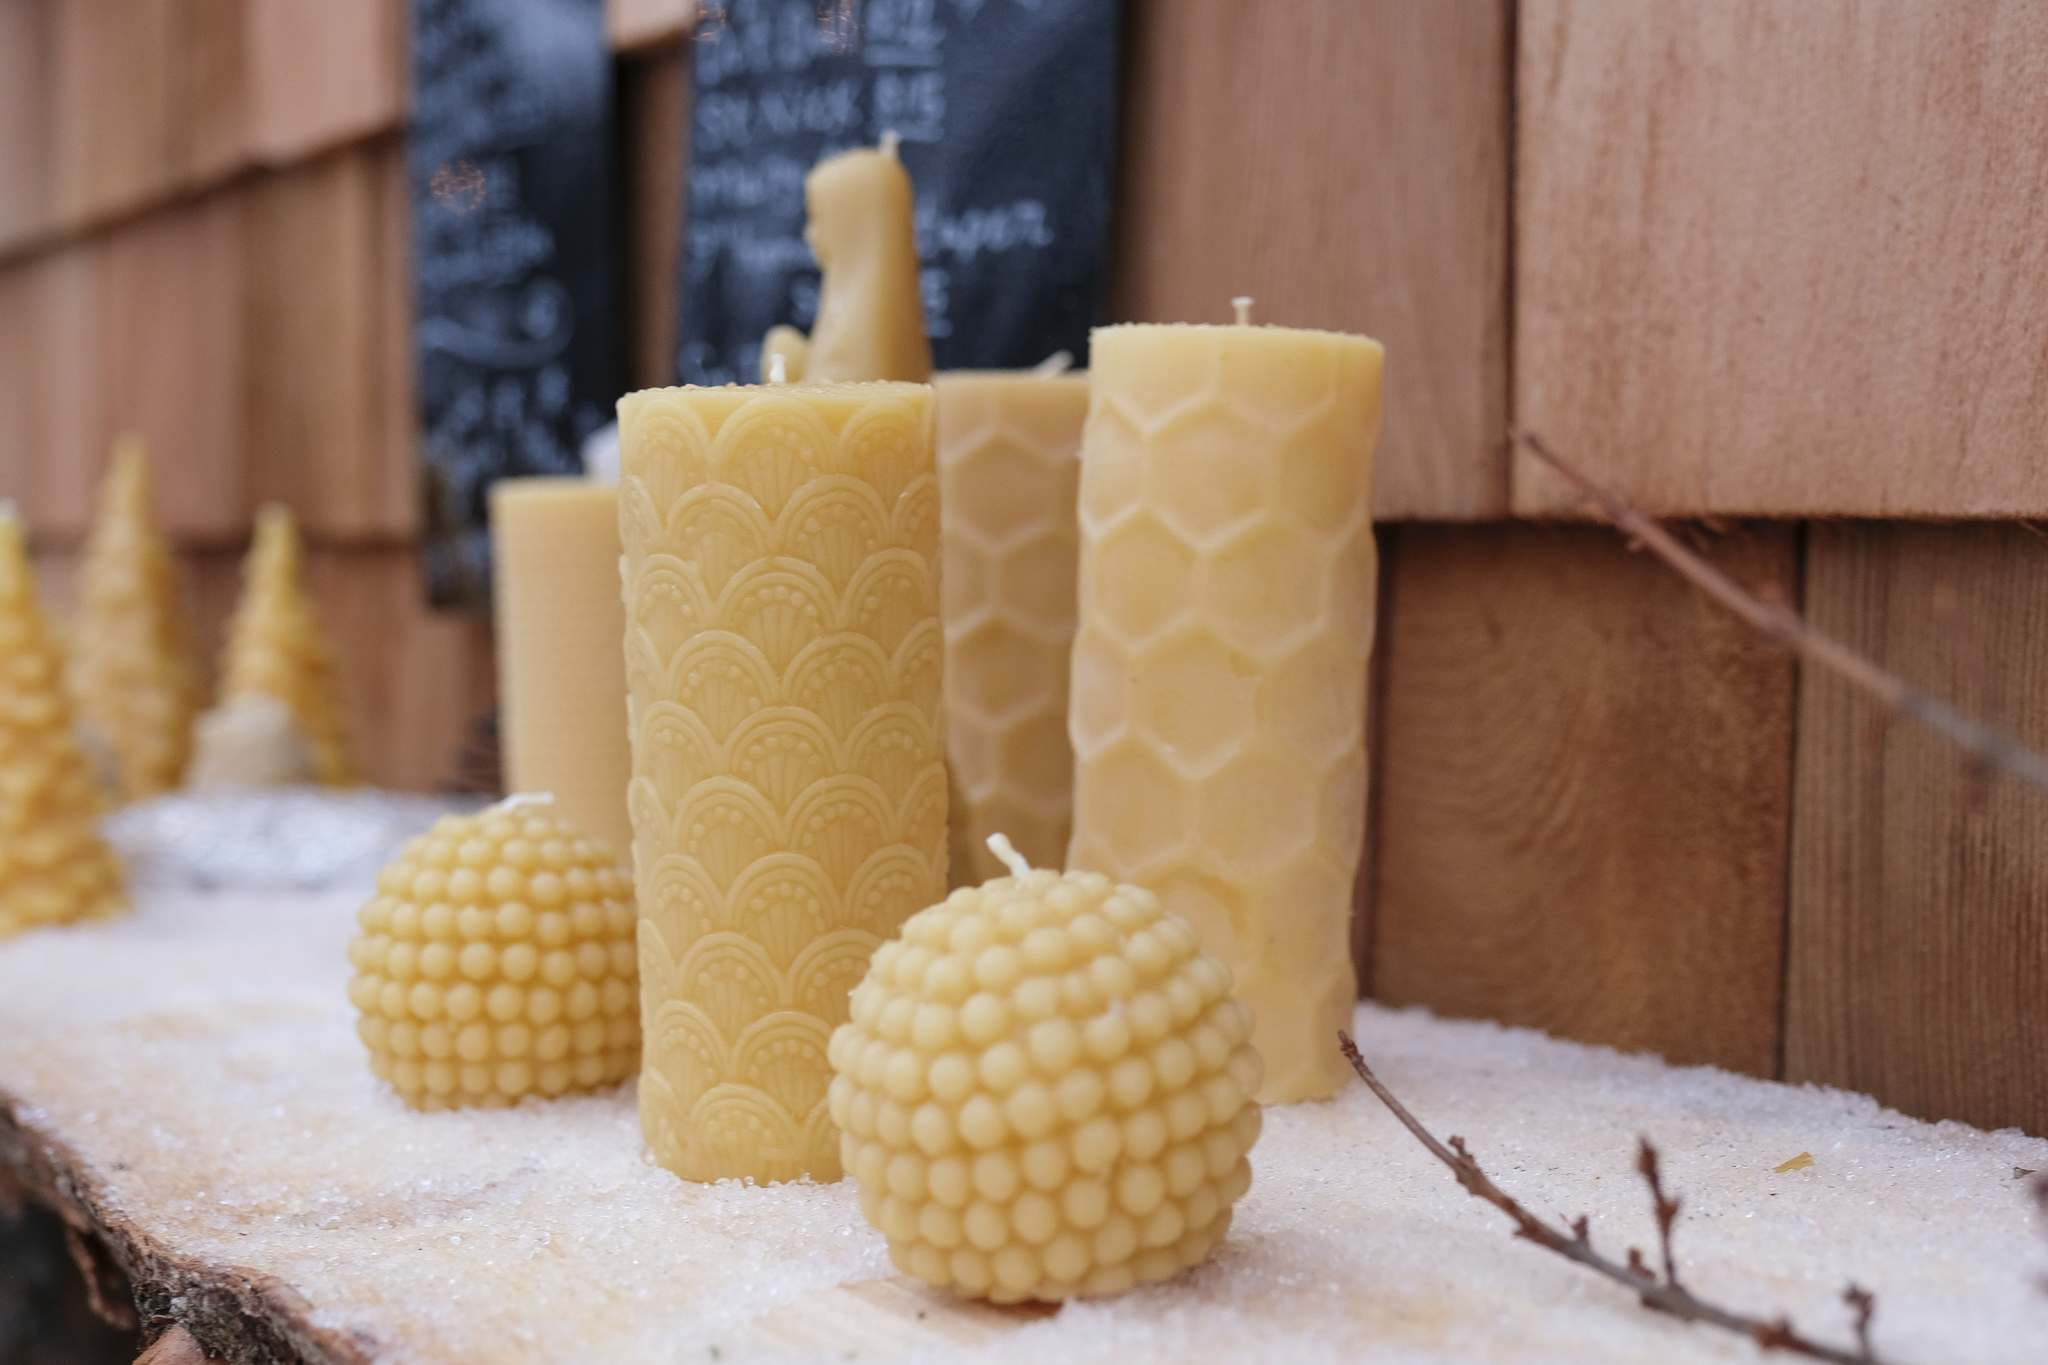 Along with Christmas trees, shoppers can also pick small items like locally made candles from Barletta Beeswax.